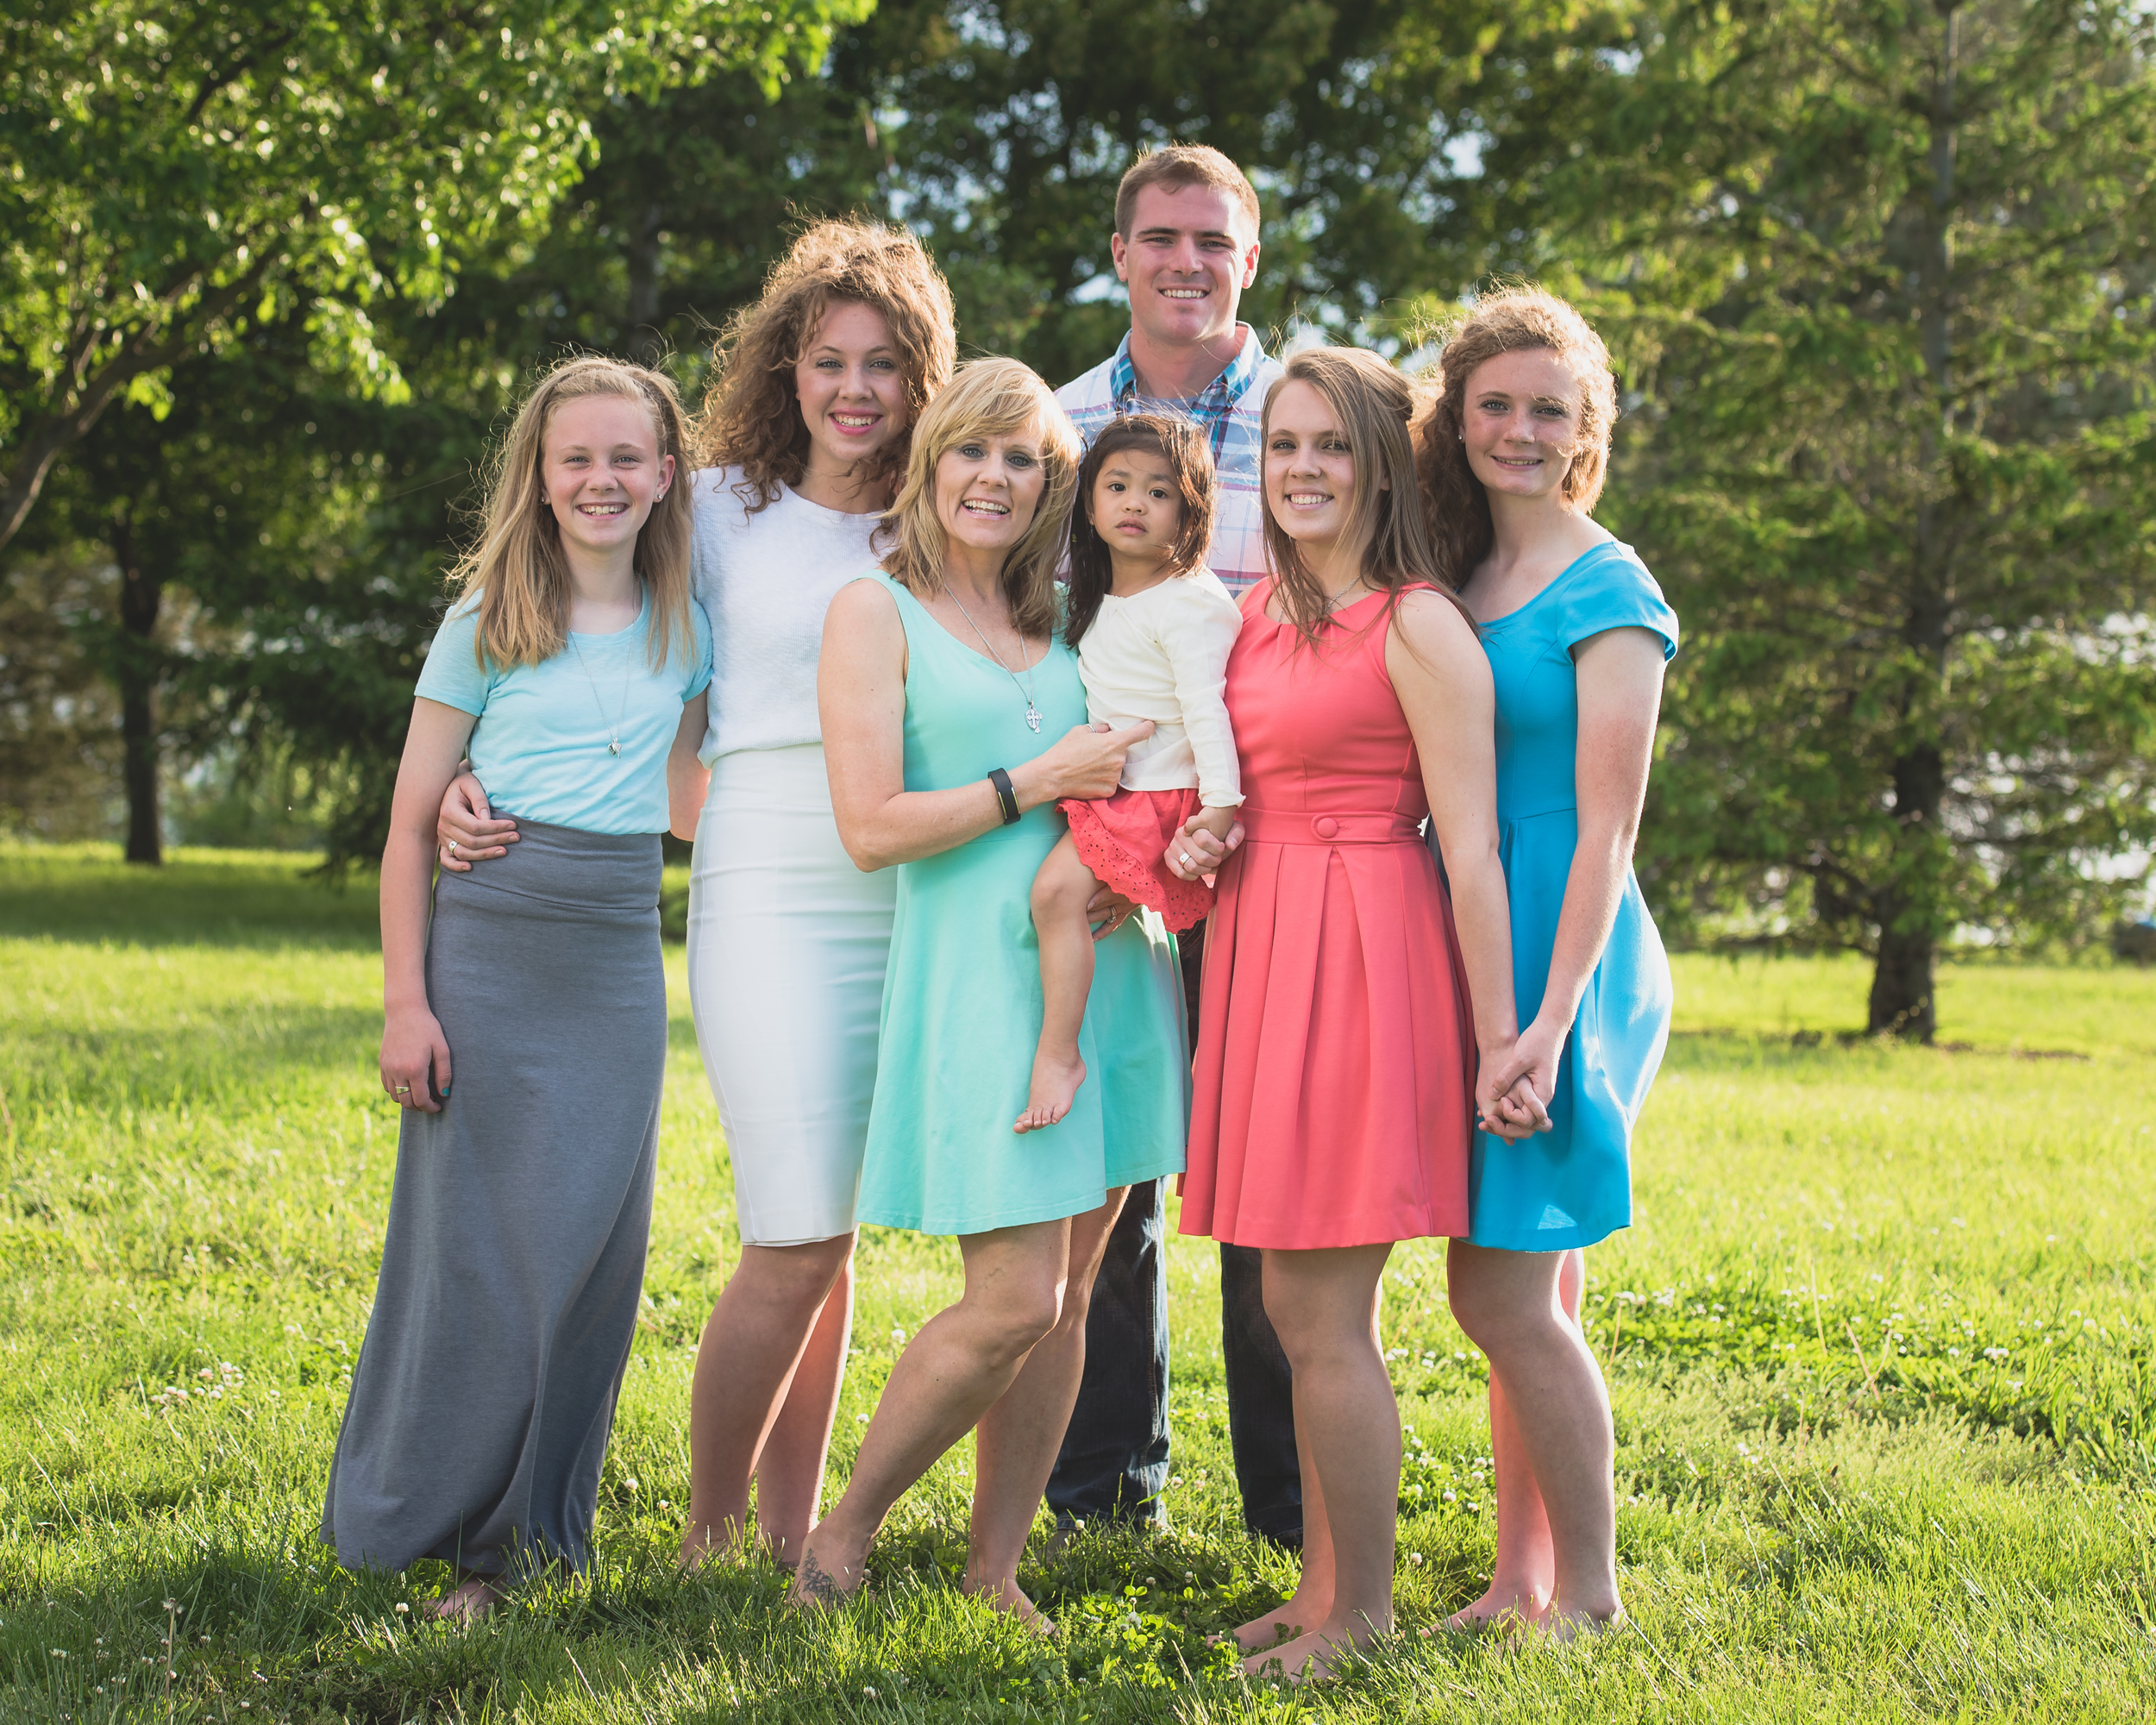 Vanderhorst Family Shoot2.jpg